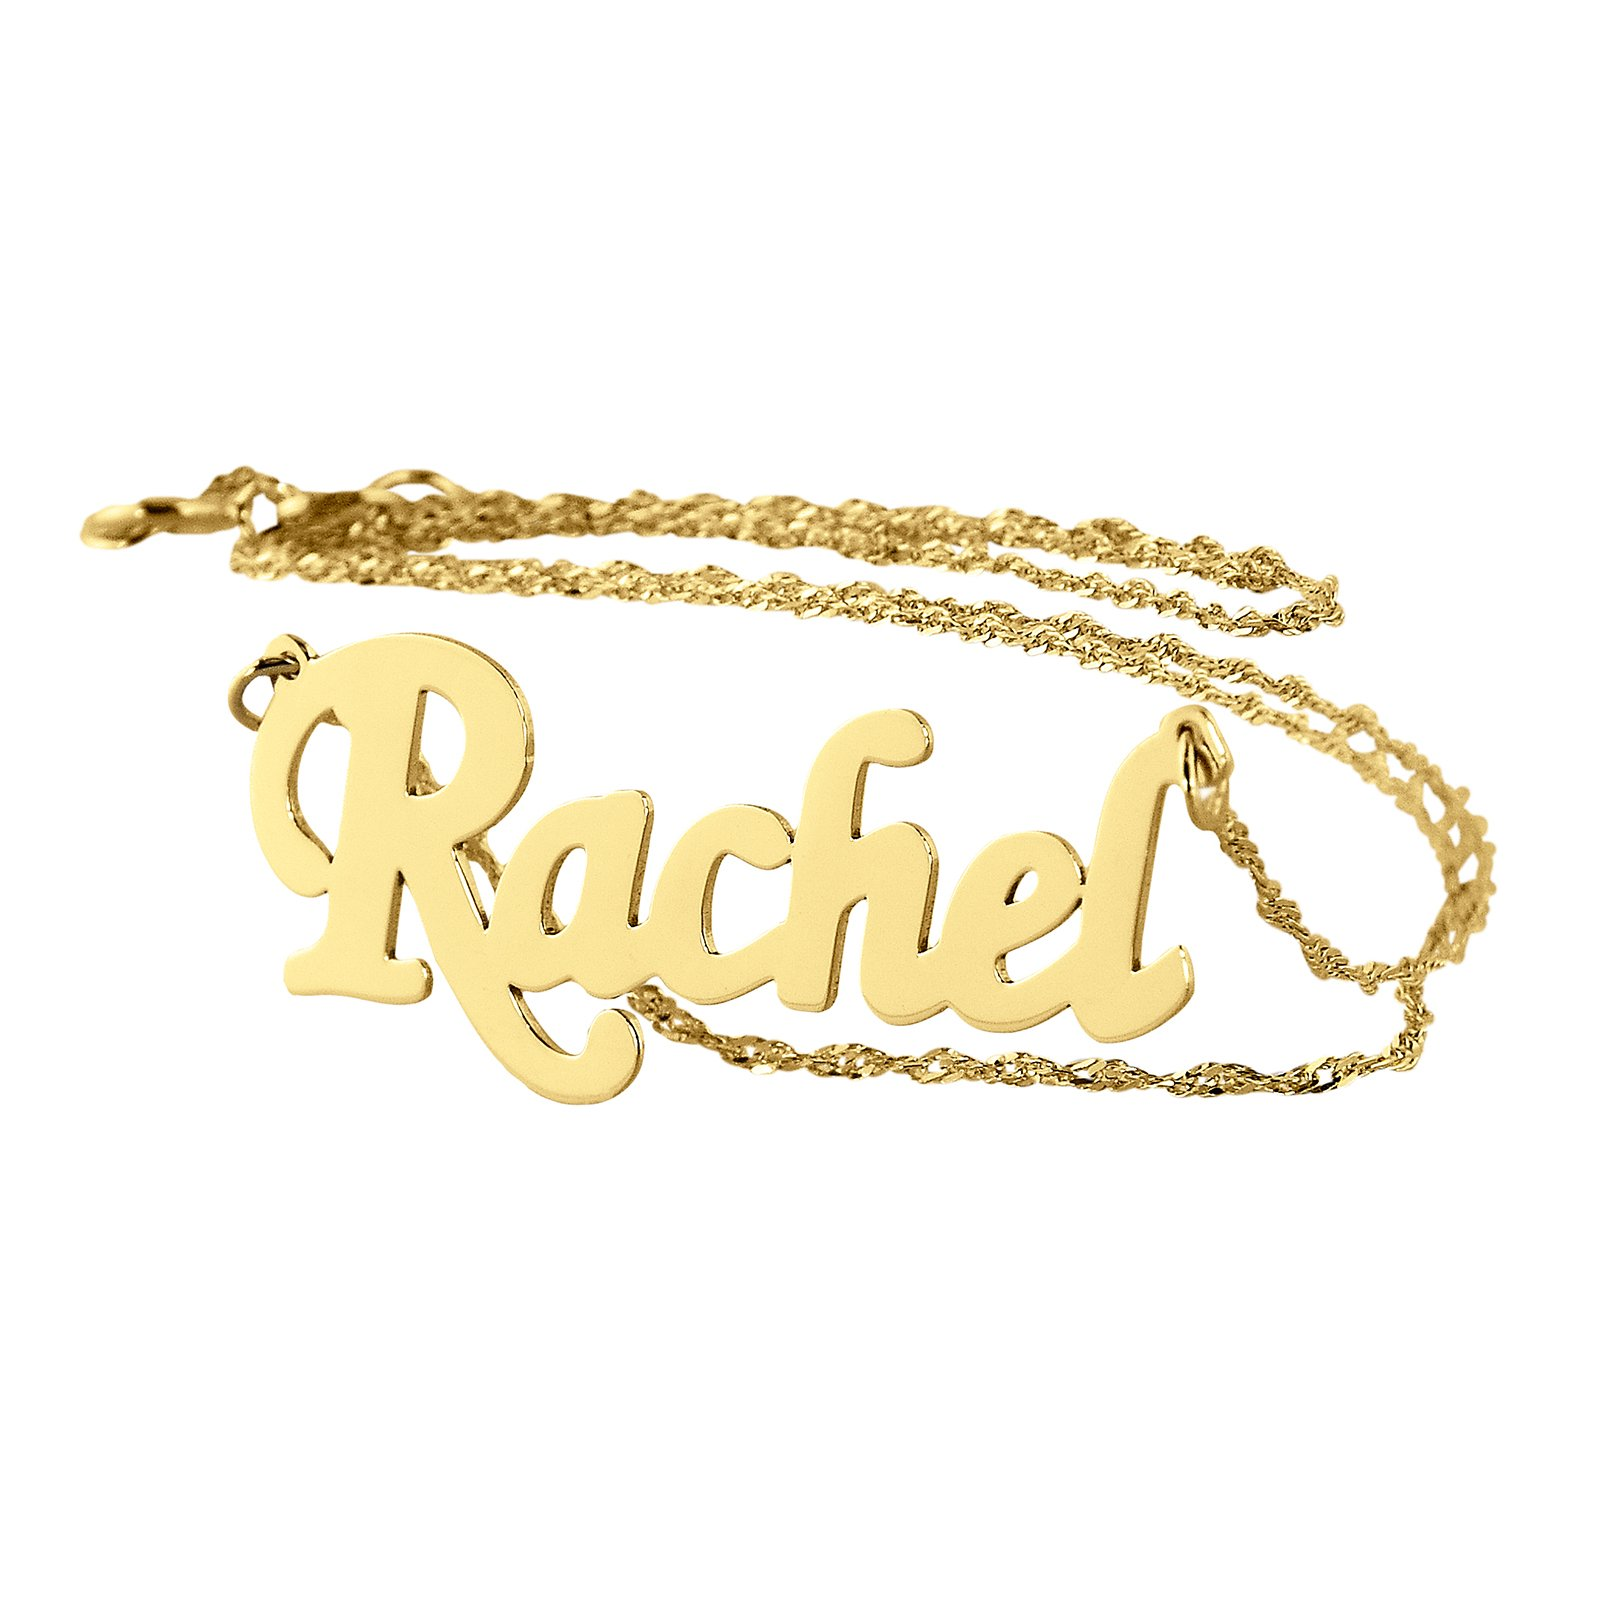 Personalized Name Necklace 14k Gold Dainty Pendant Charm. (16)